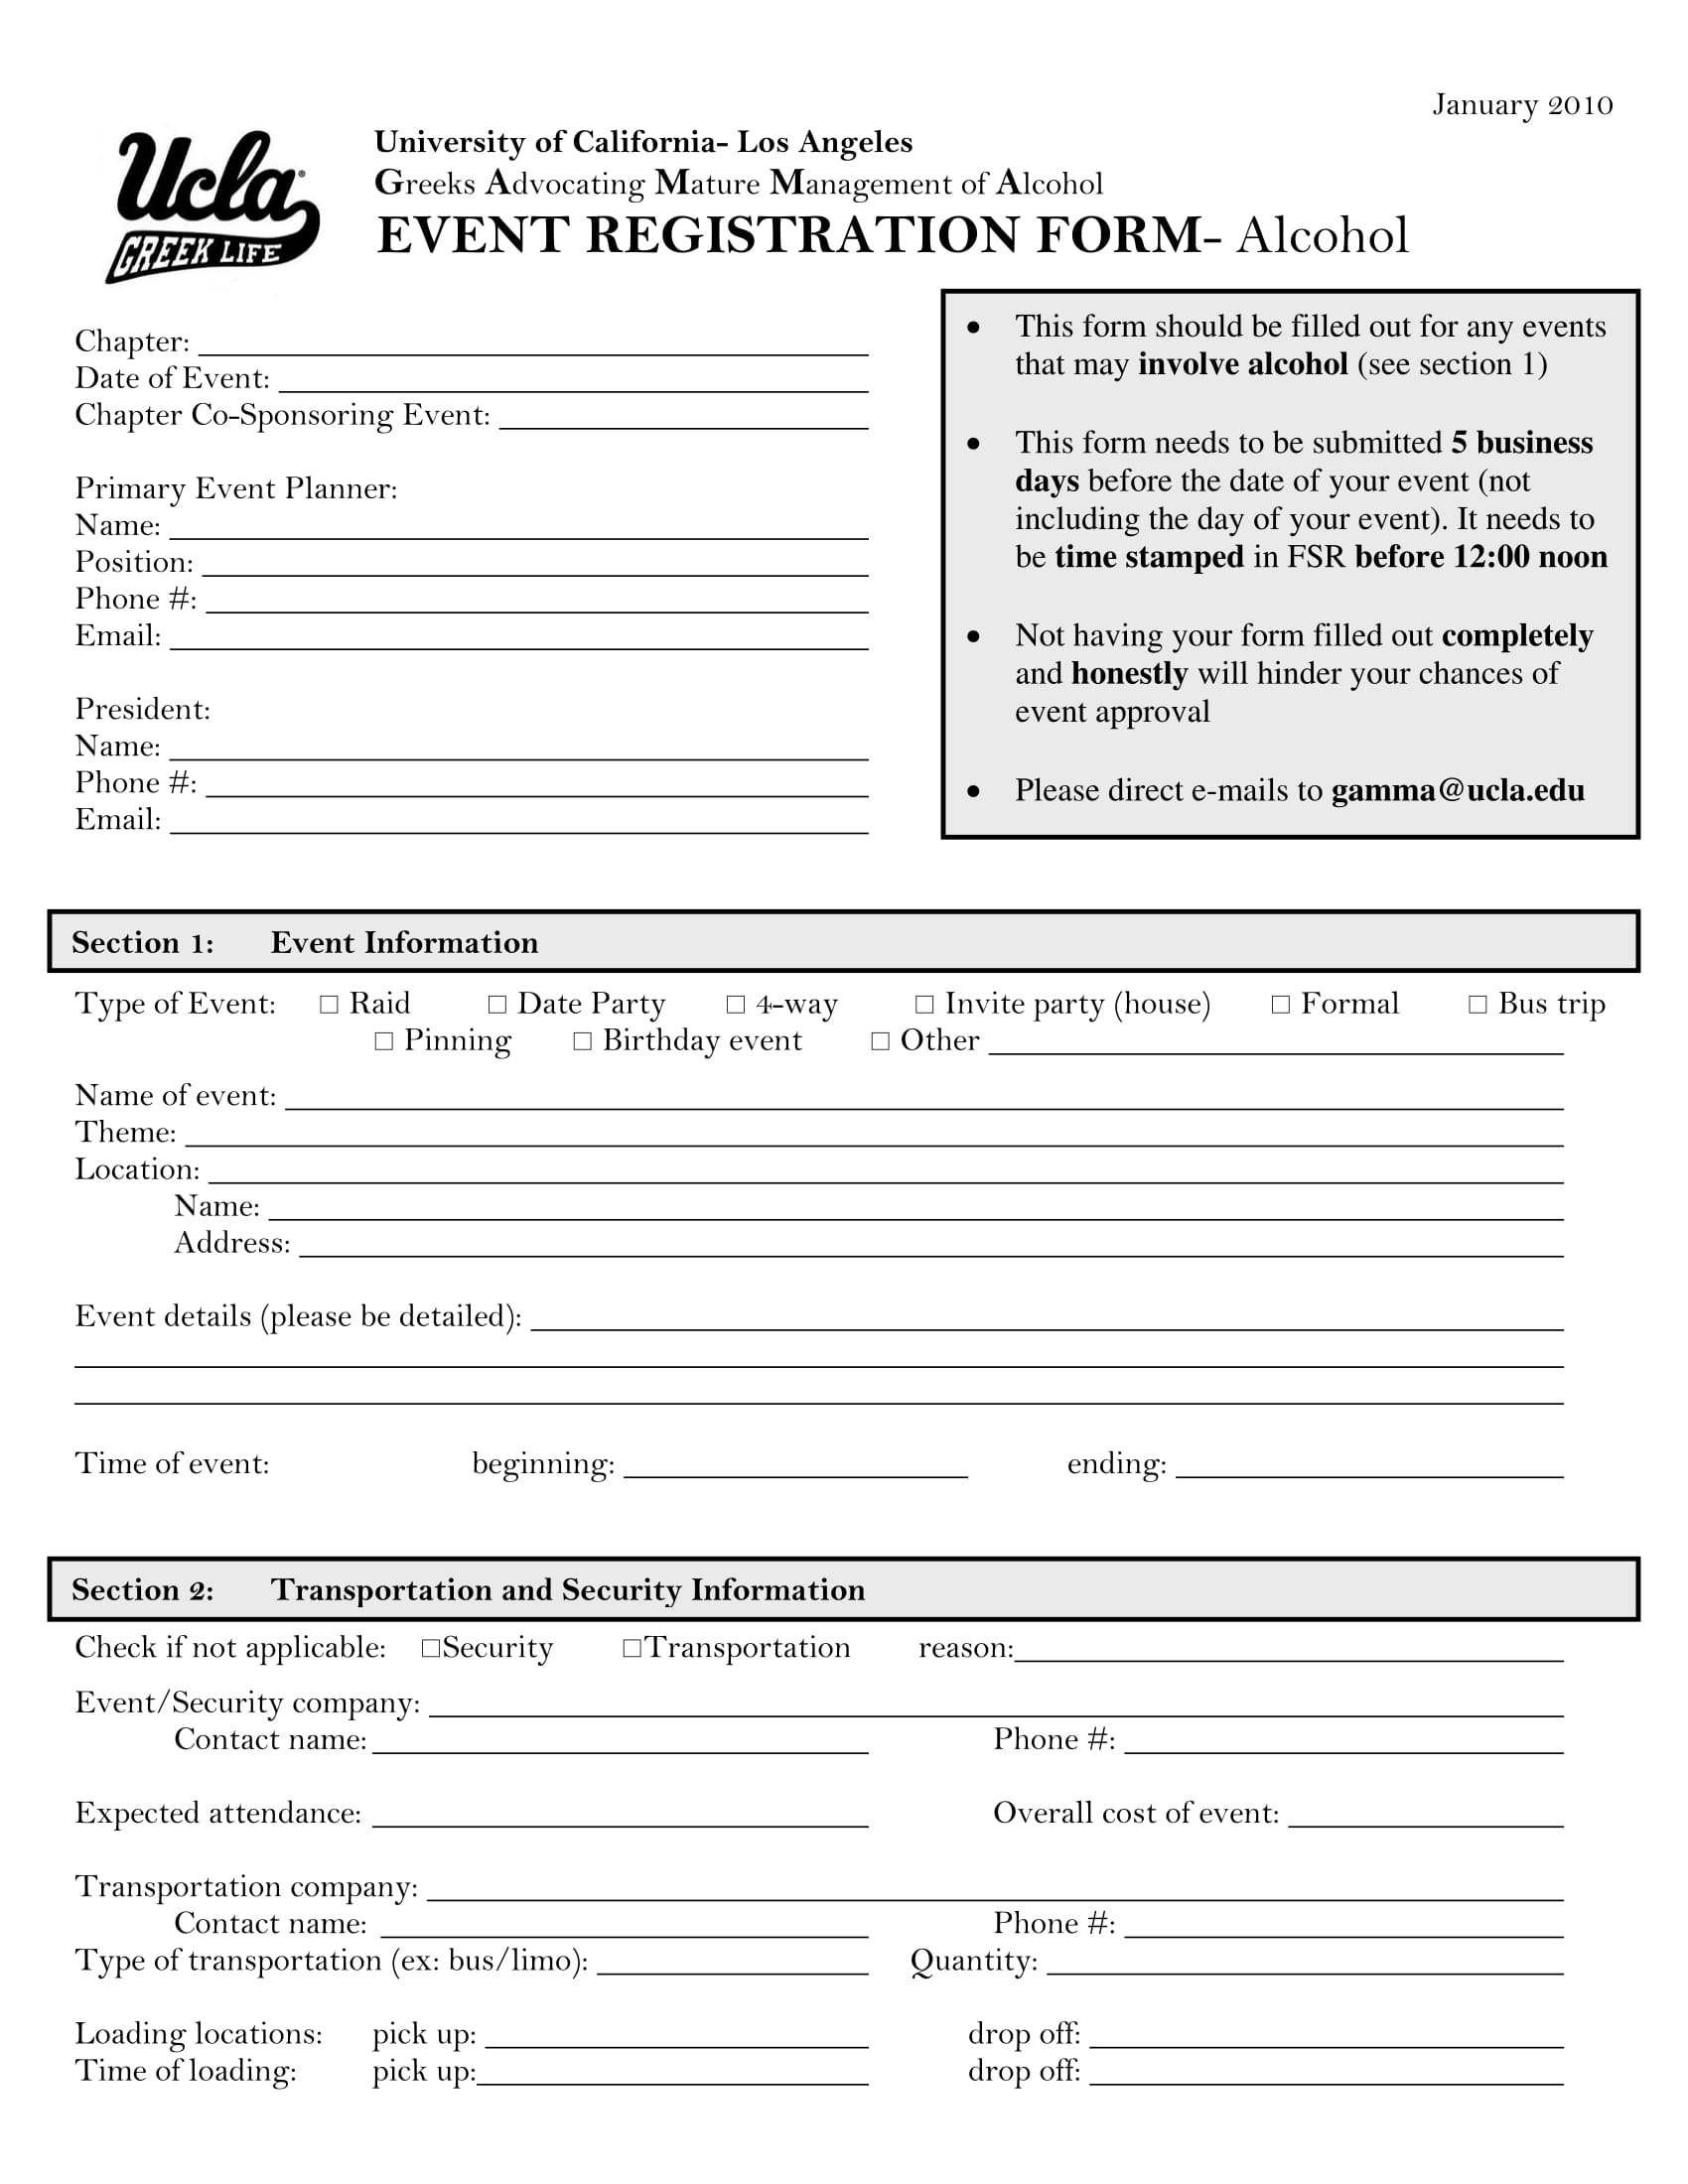 university event registration form 1